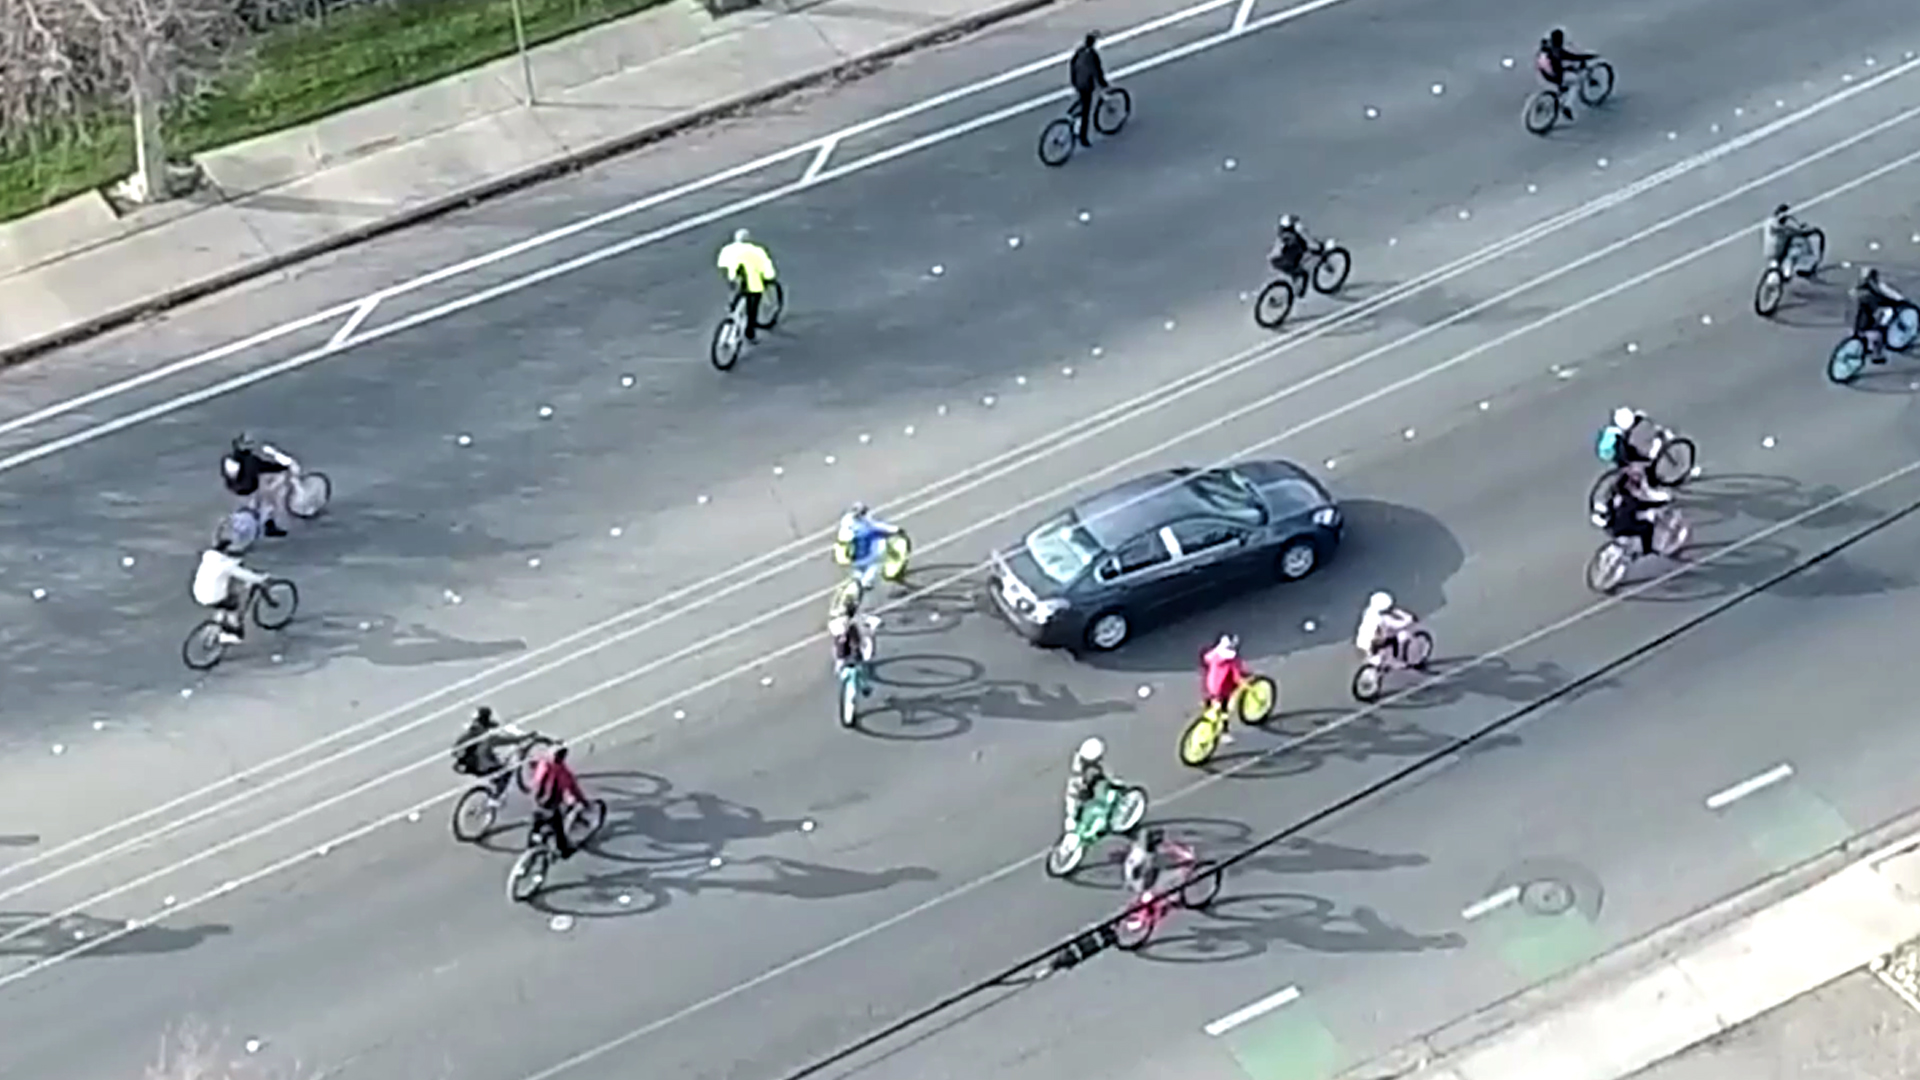 VIDEO: Lawless Cyclists Ignore Cops on Mass Ride Through City